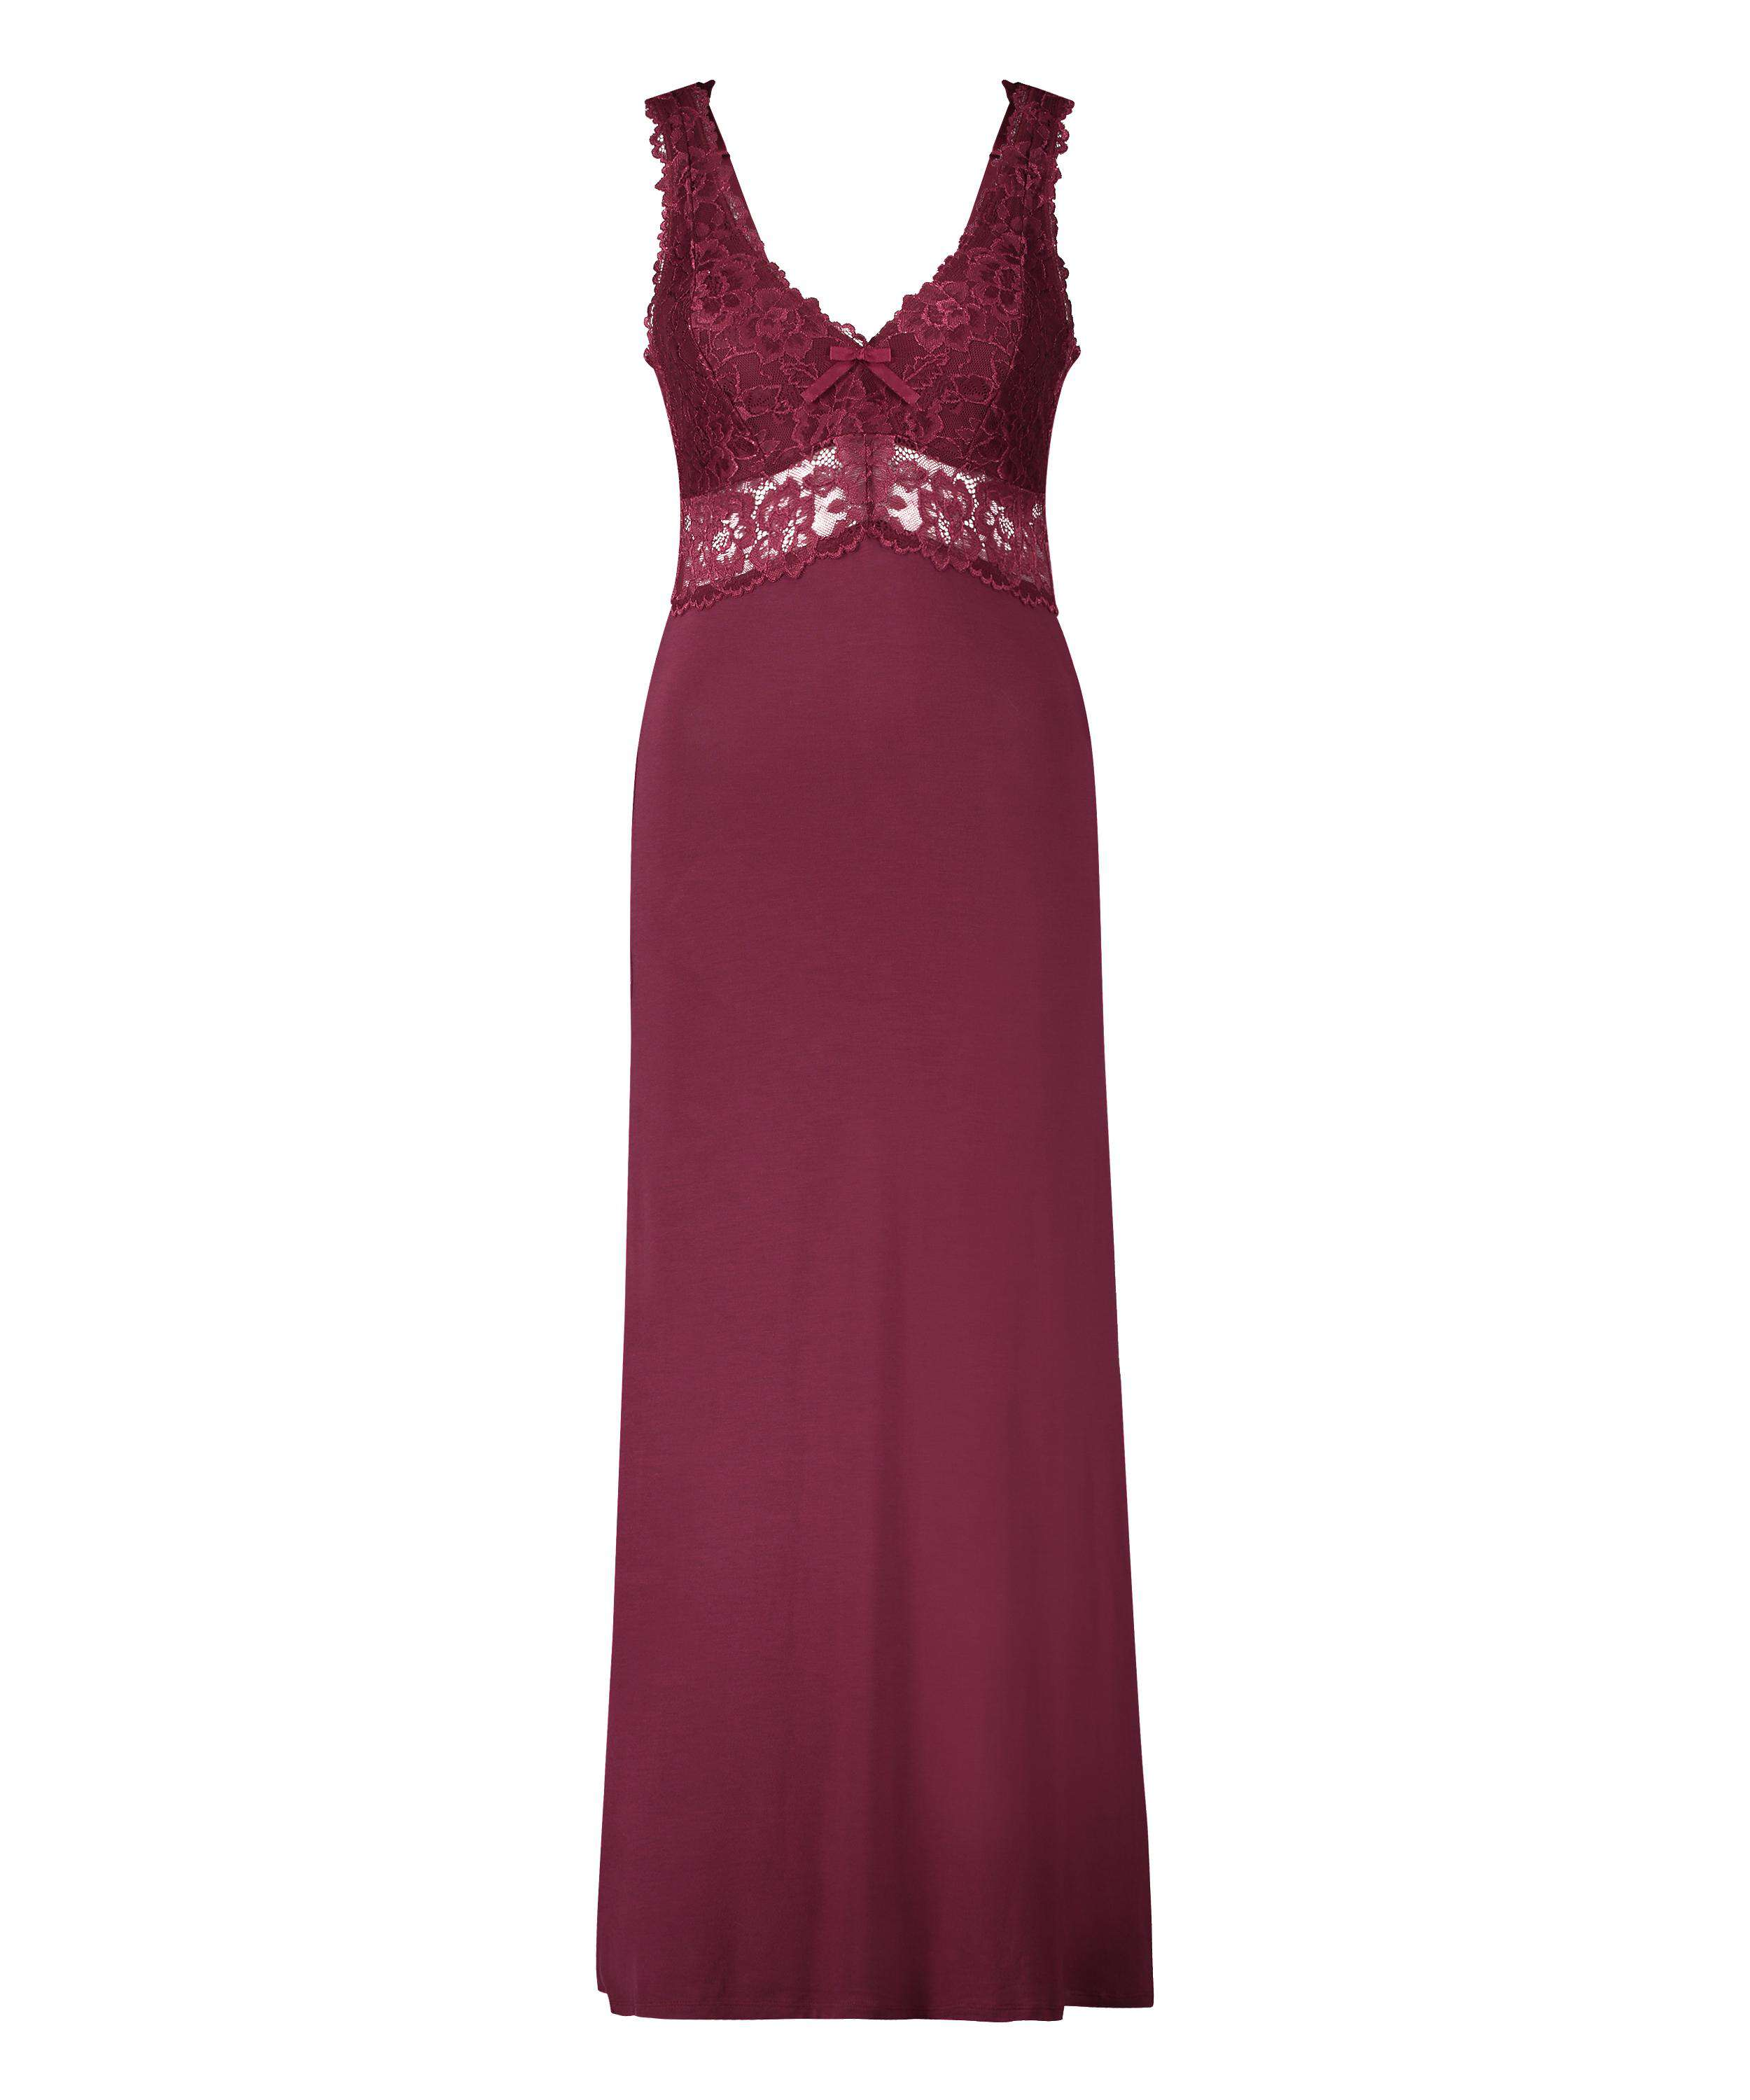 Nora Lace Long Slip Dress, Red, main